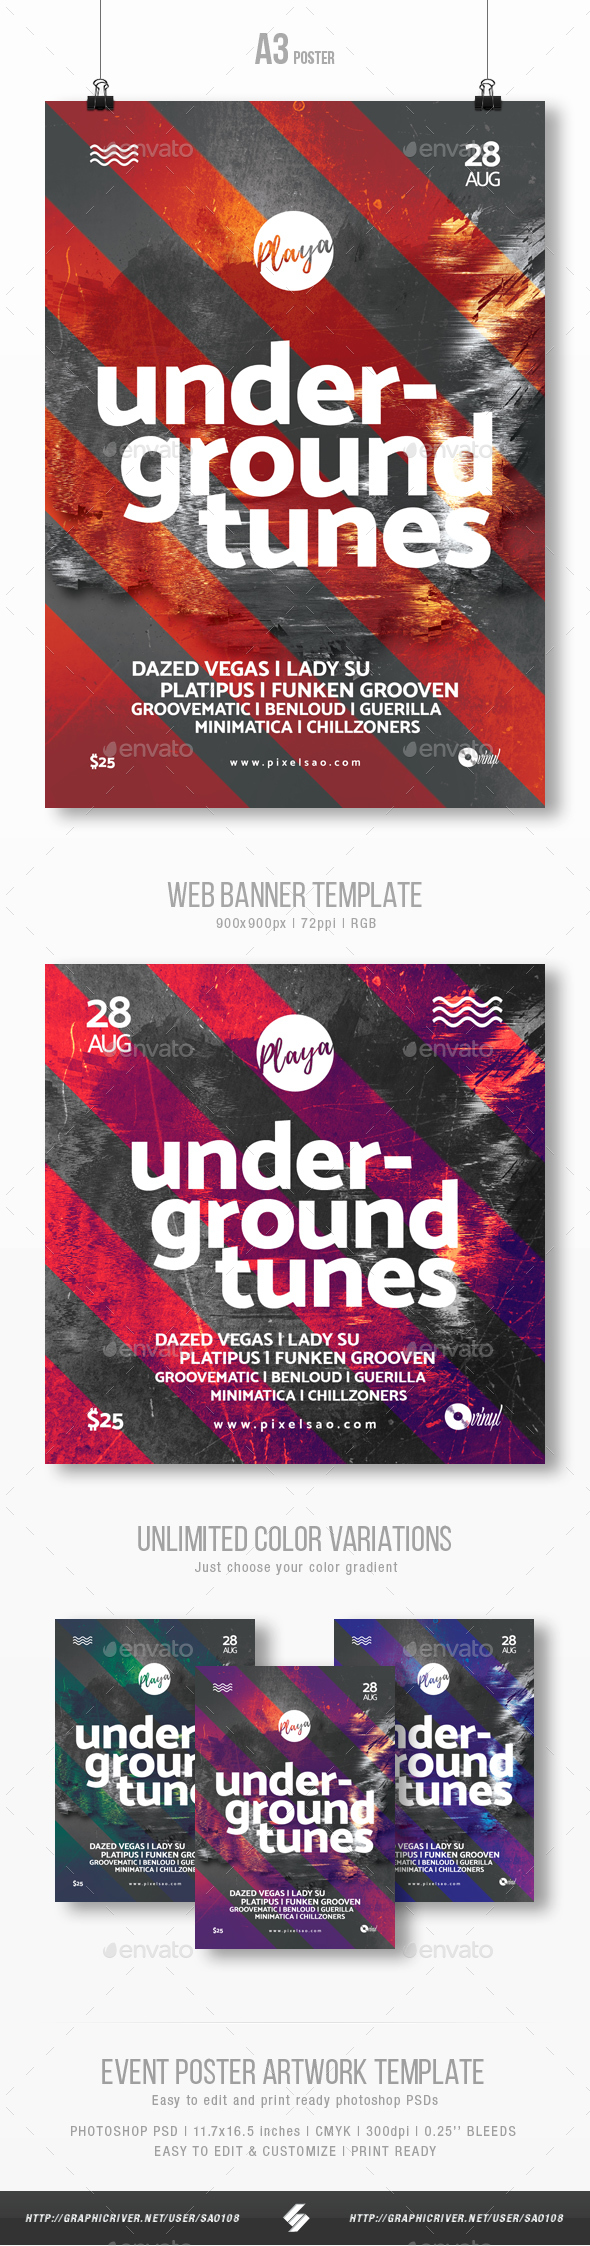 Underground Tunes - Club Music Party Flyer / Poster Template A3 - Clubs & Parties Events